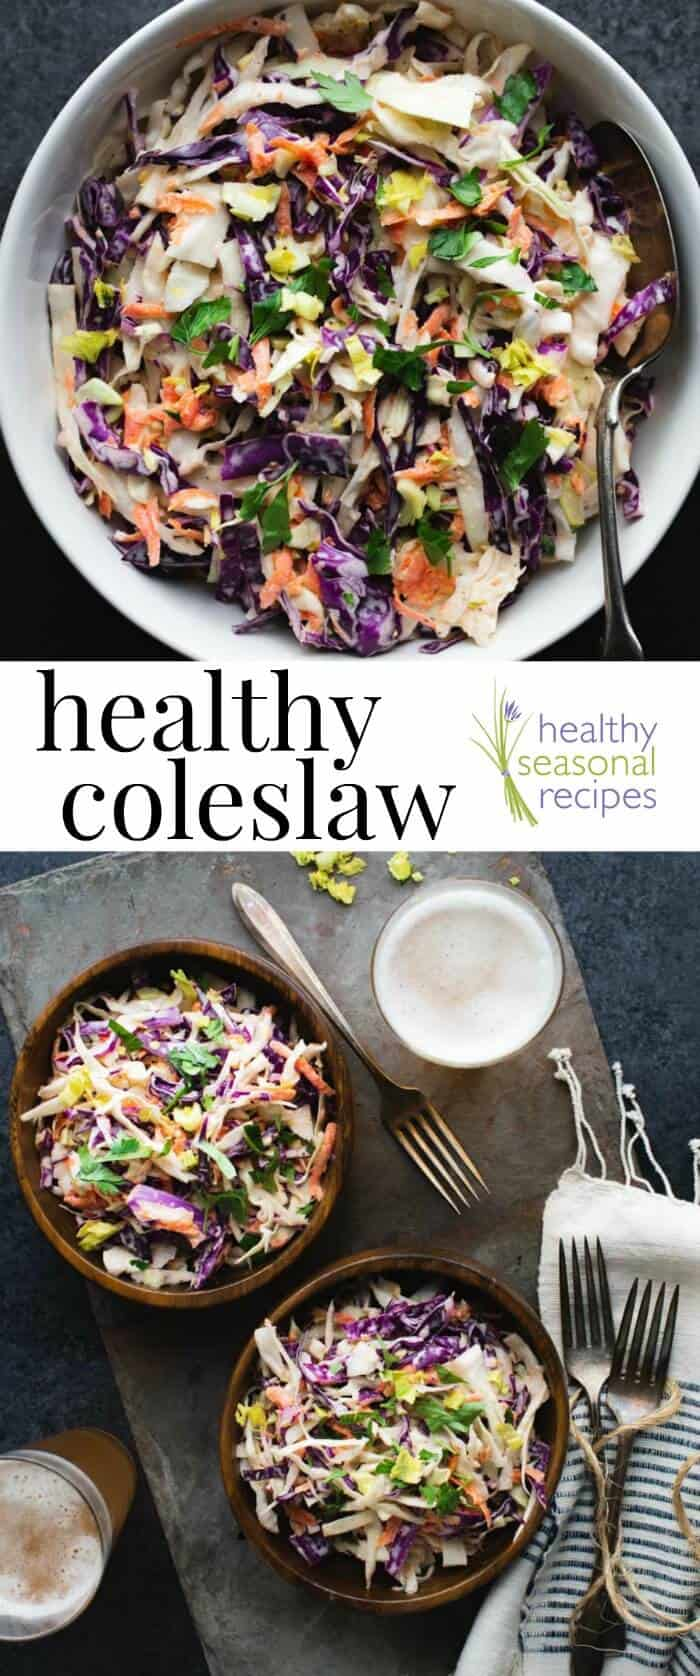 Healthy Coleslaw Recipe with red and green cabbage, carrots and creamy Greek-yogurt dressing. Only 75 calories per serving! #healthyseasonal #vegetables #sidedish #coleslaw #salad #cabbage #cookout #fourthofjuly #memorialday #barbecue